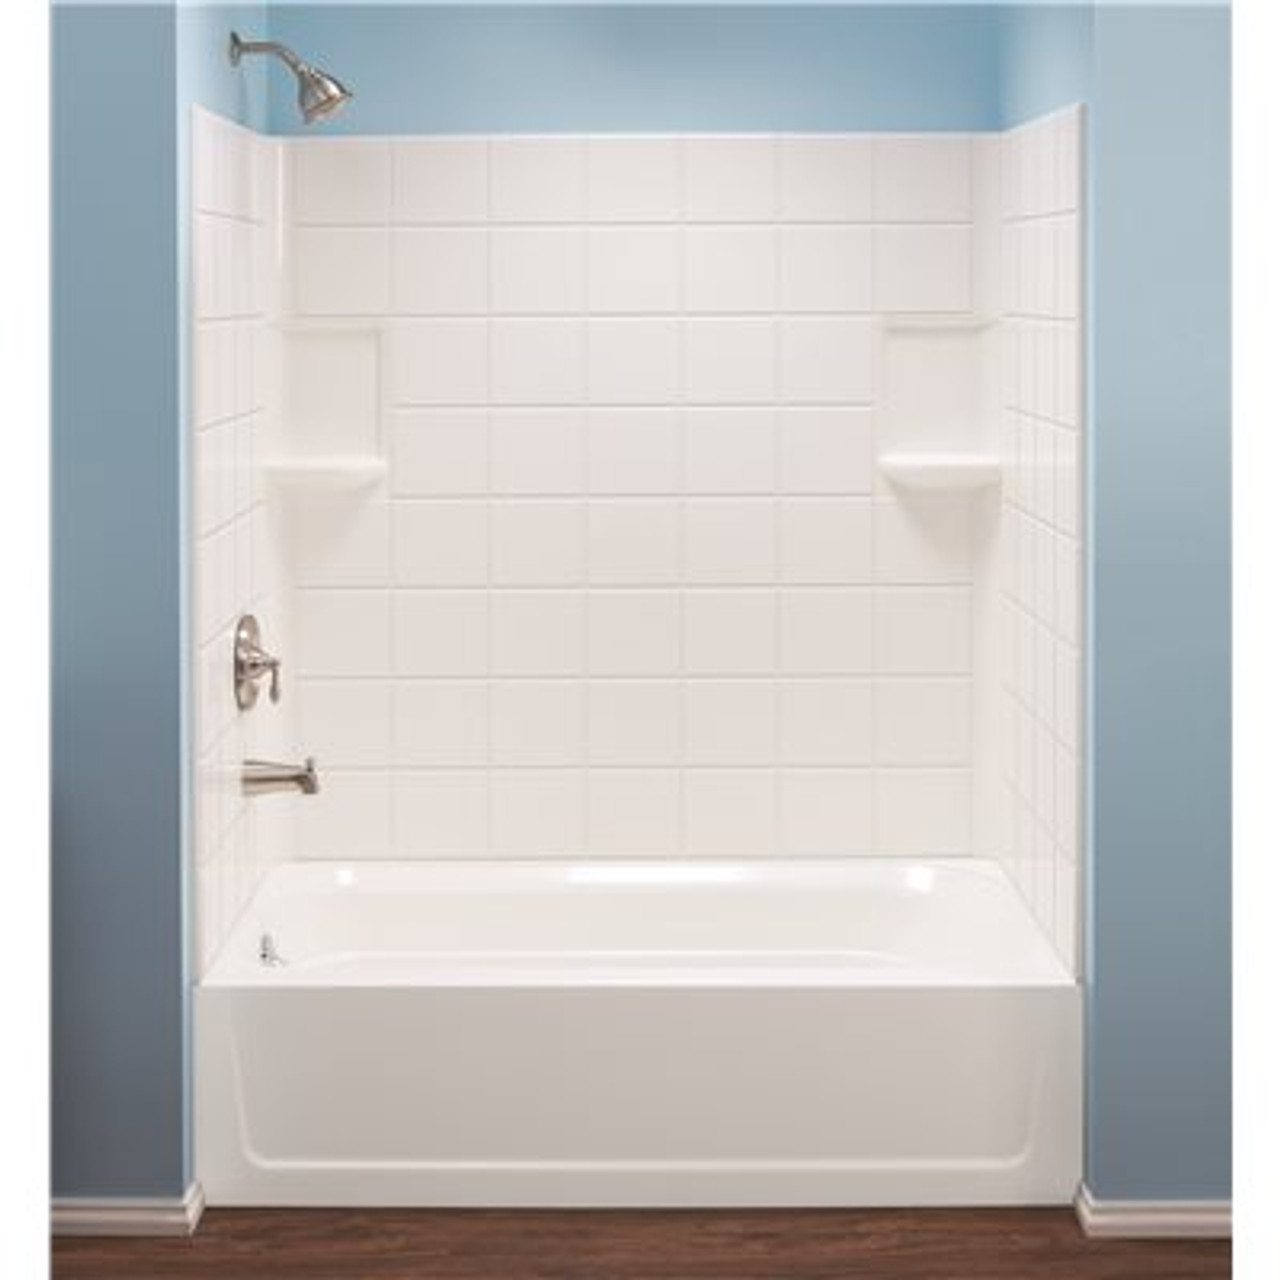 MUSTEE Topaz 30 in. x 60 in. x 59 in. 3-Piece Direct-to-Stud Tub Surround in White Item # 3557741|MUSTEE Part # 670WHT|UPC Code 671031005045|UNSPSC Code 30181507